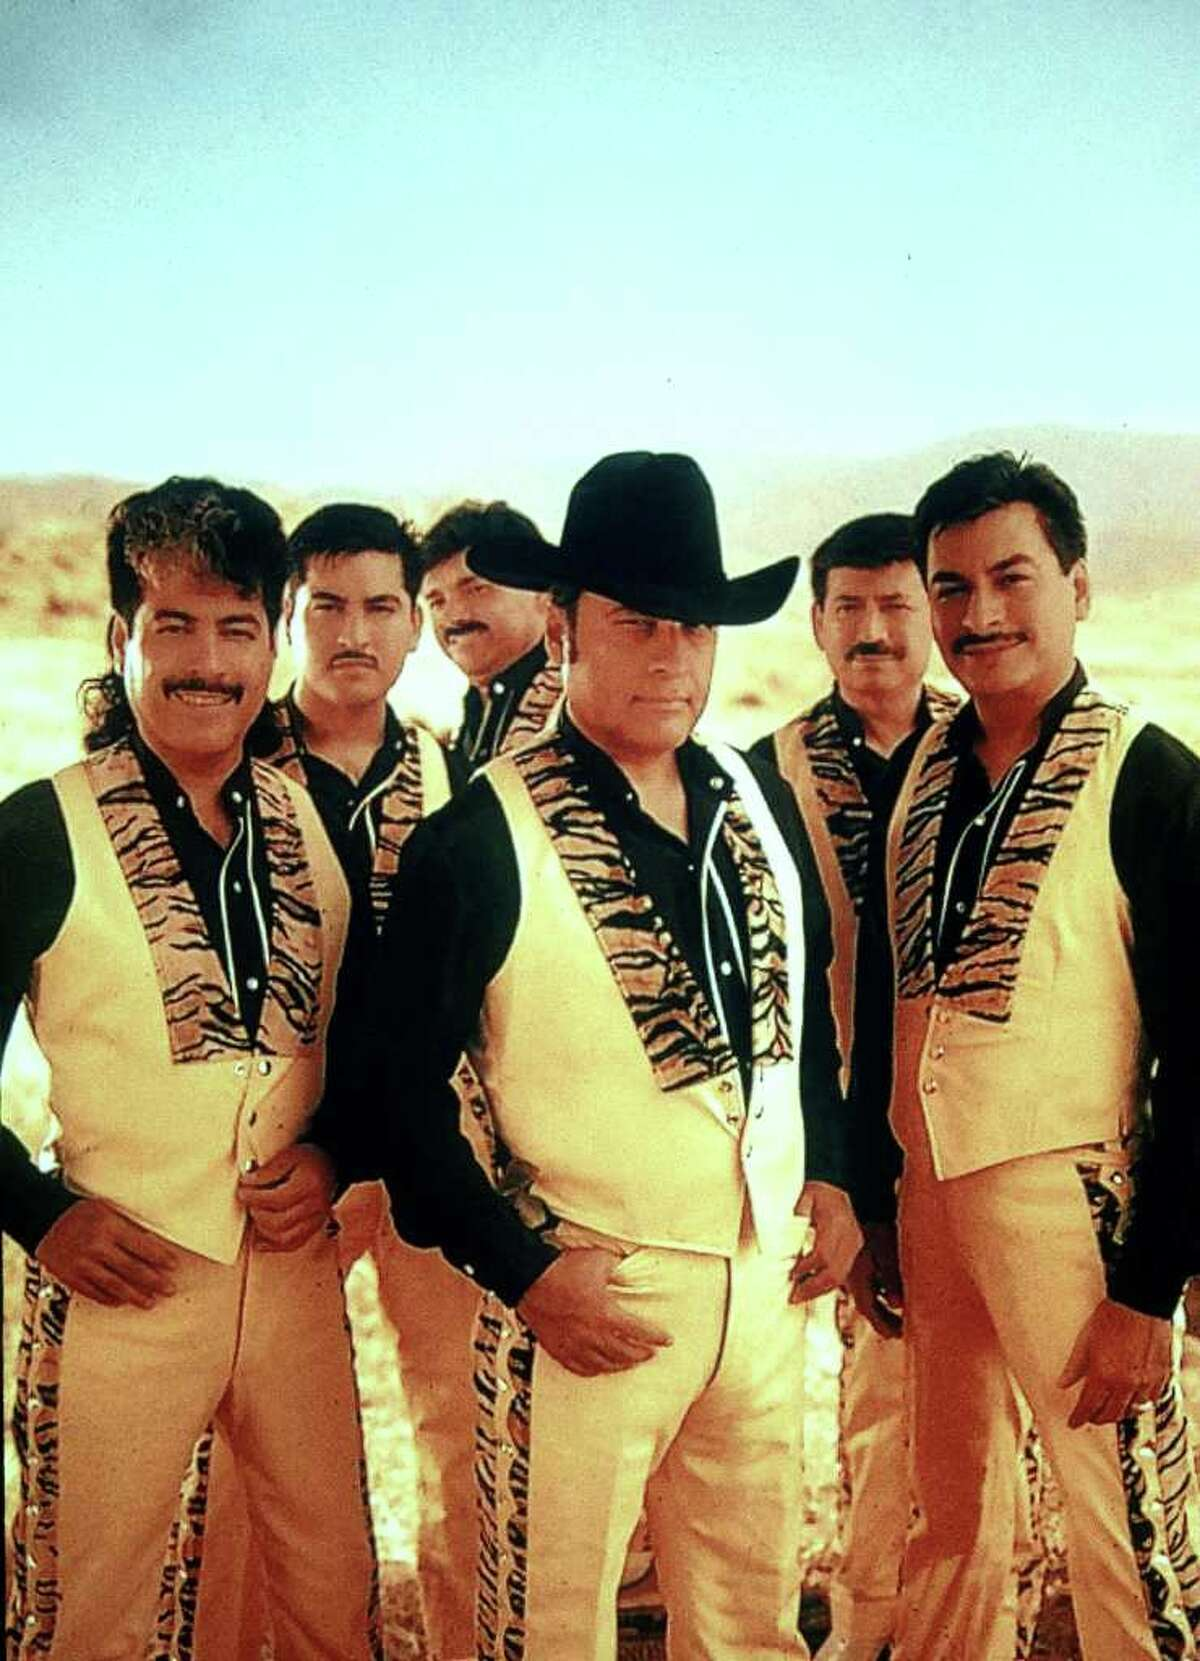 The Tigres del Norte band pose in this 2002 handout photo in northern Mexico. The group, which drew fire in the past for songs about drug traffickers, is now mocking President Vicente Fox.